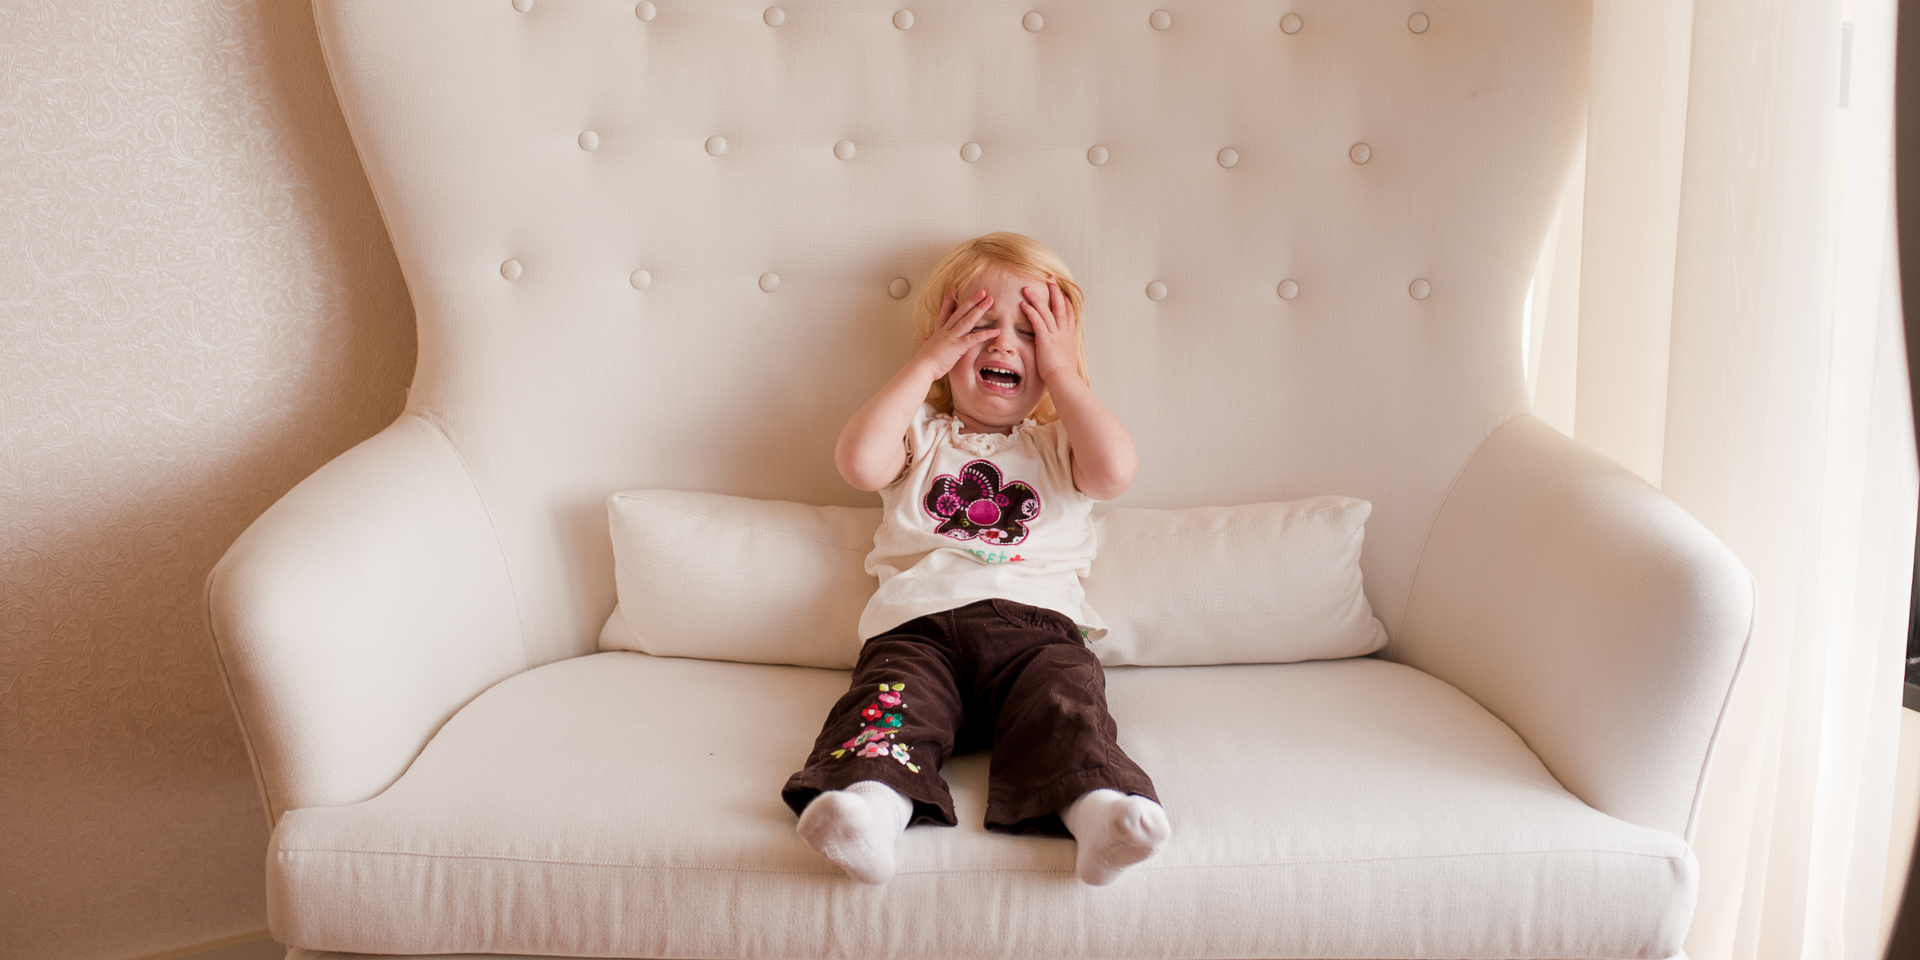 Healthy Ways to Deal With Toddler Tantrums